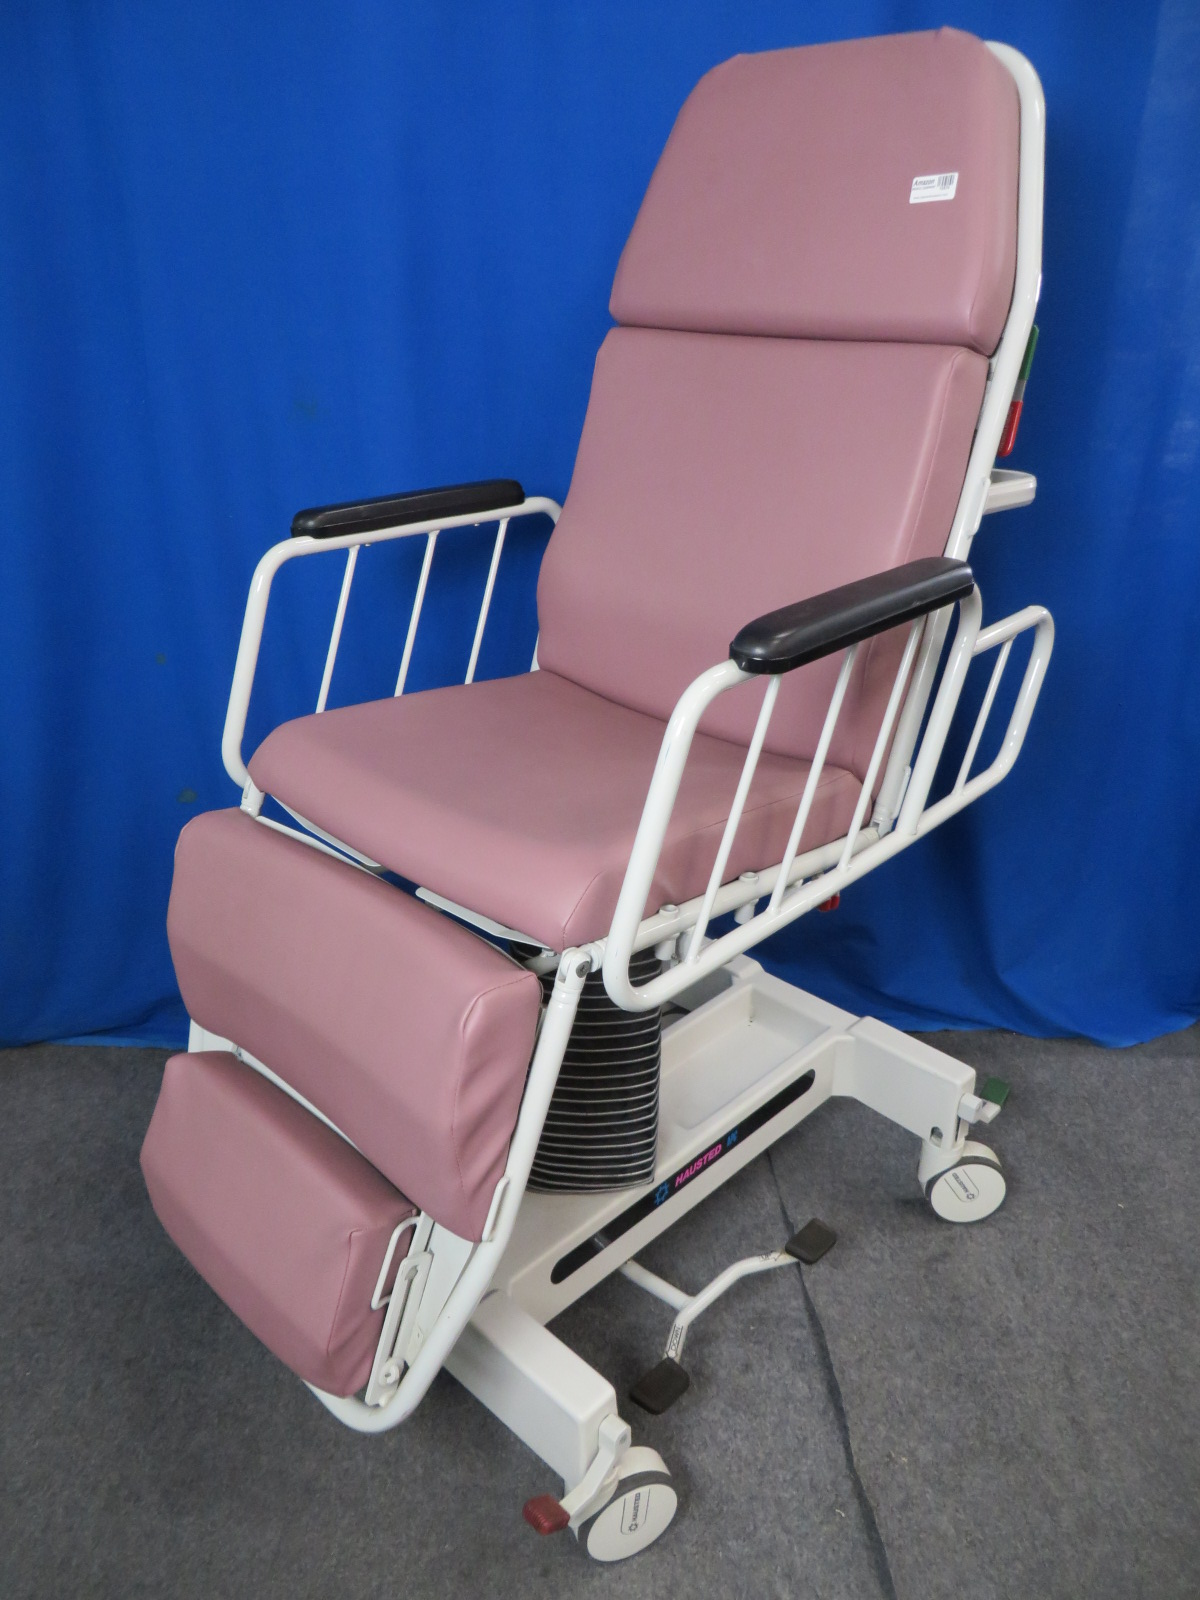 Stretcher Chair Hausted Ap115000 All Purpose Chair Stretcher Chair 90 Day Warranty